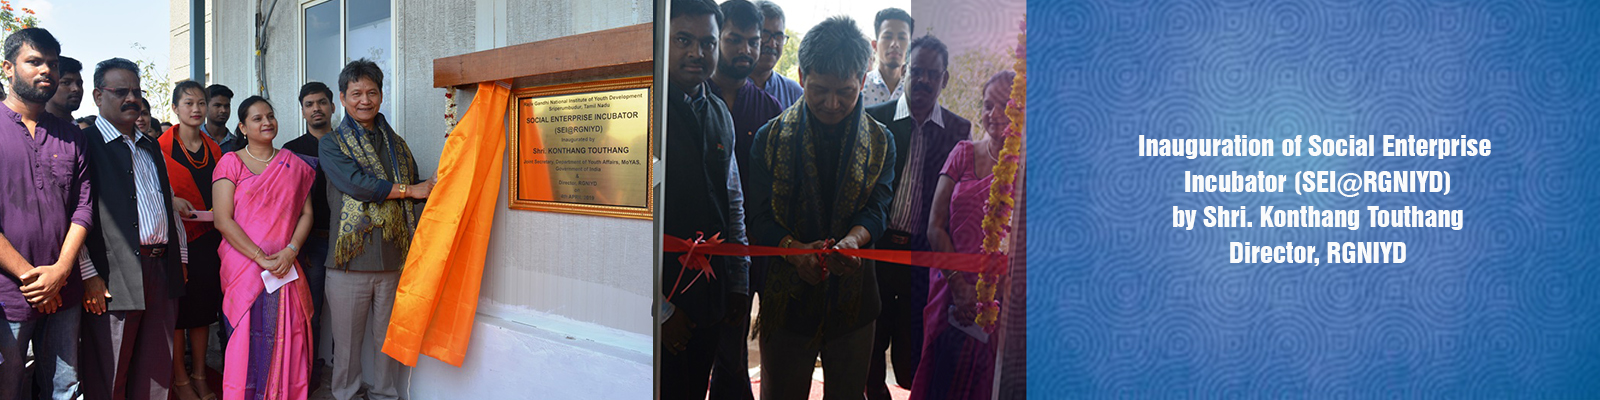 Inauguration of Social Enterprise Incubator (SEI@RGNIYD) by Shri. Konthang Touthang, Director, RGNIYD